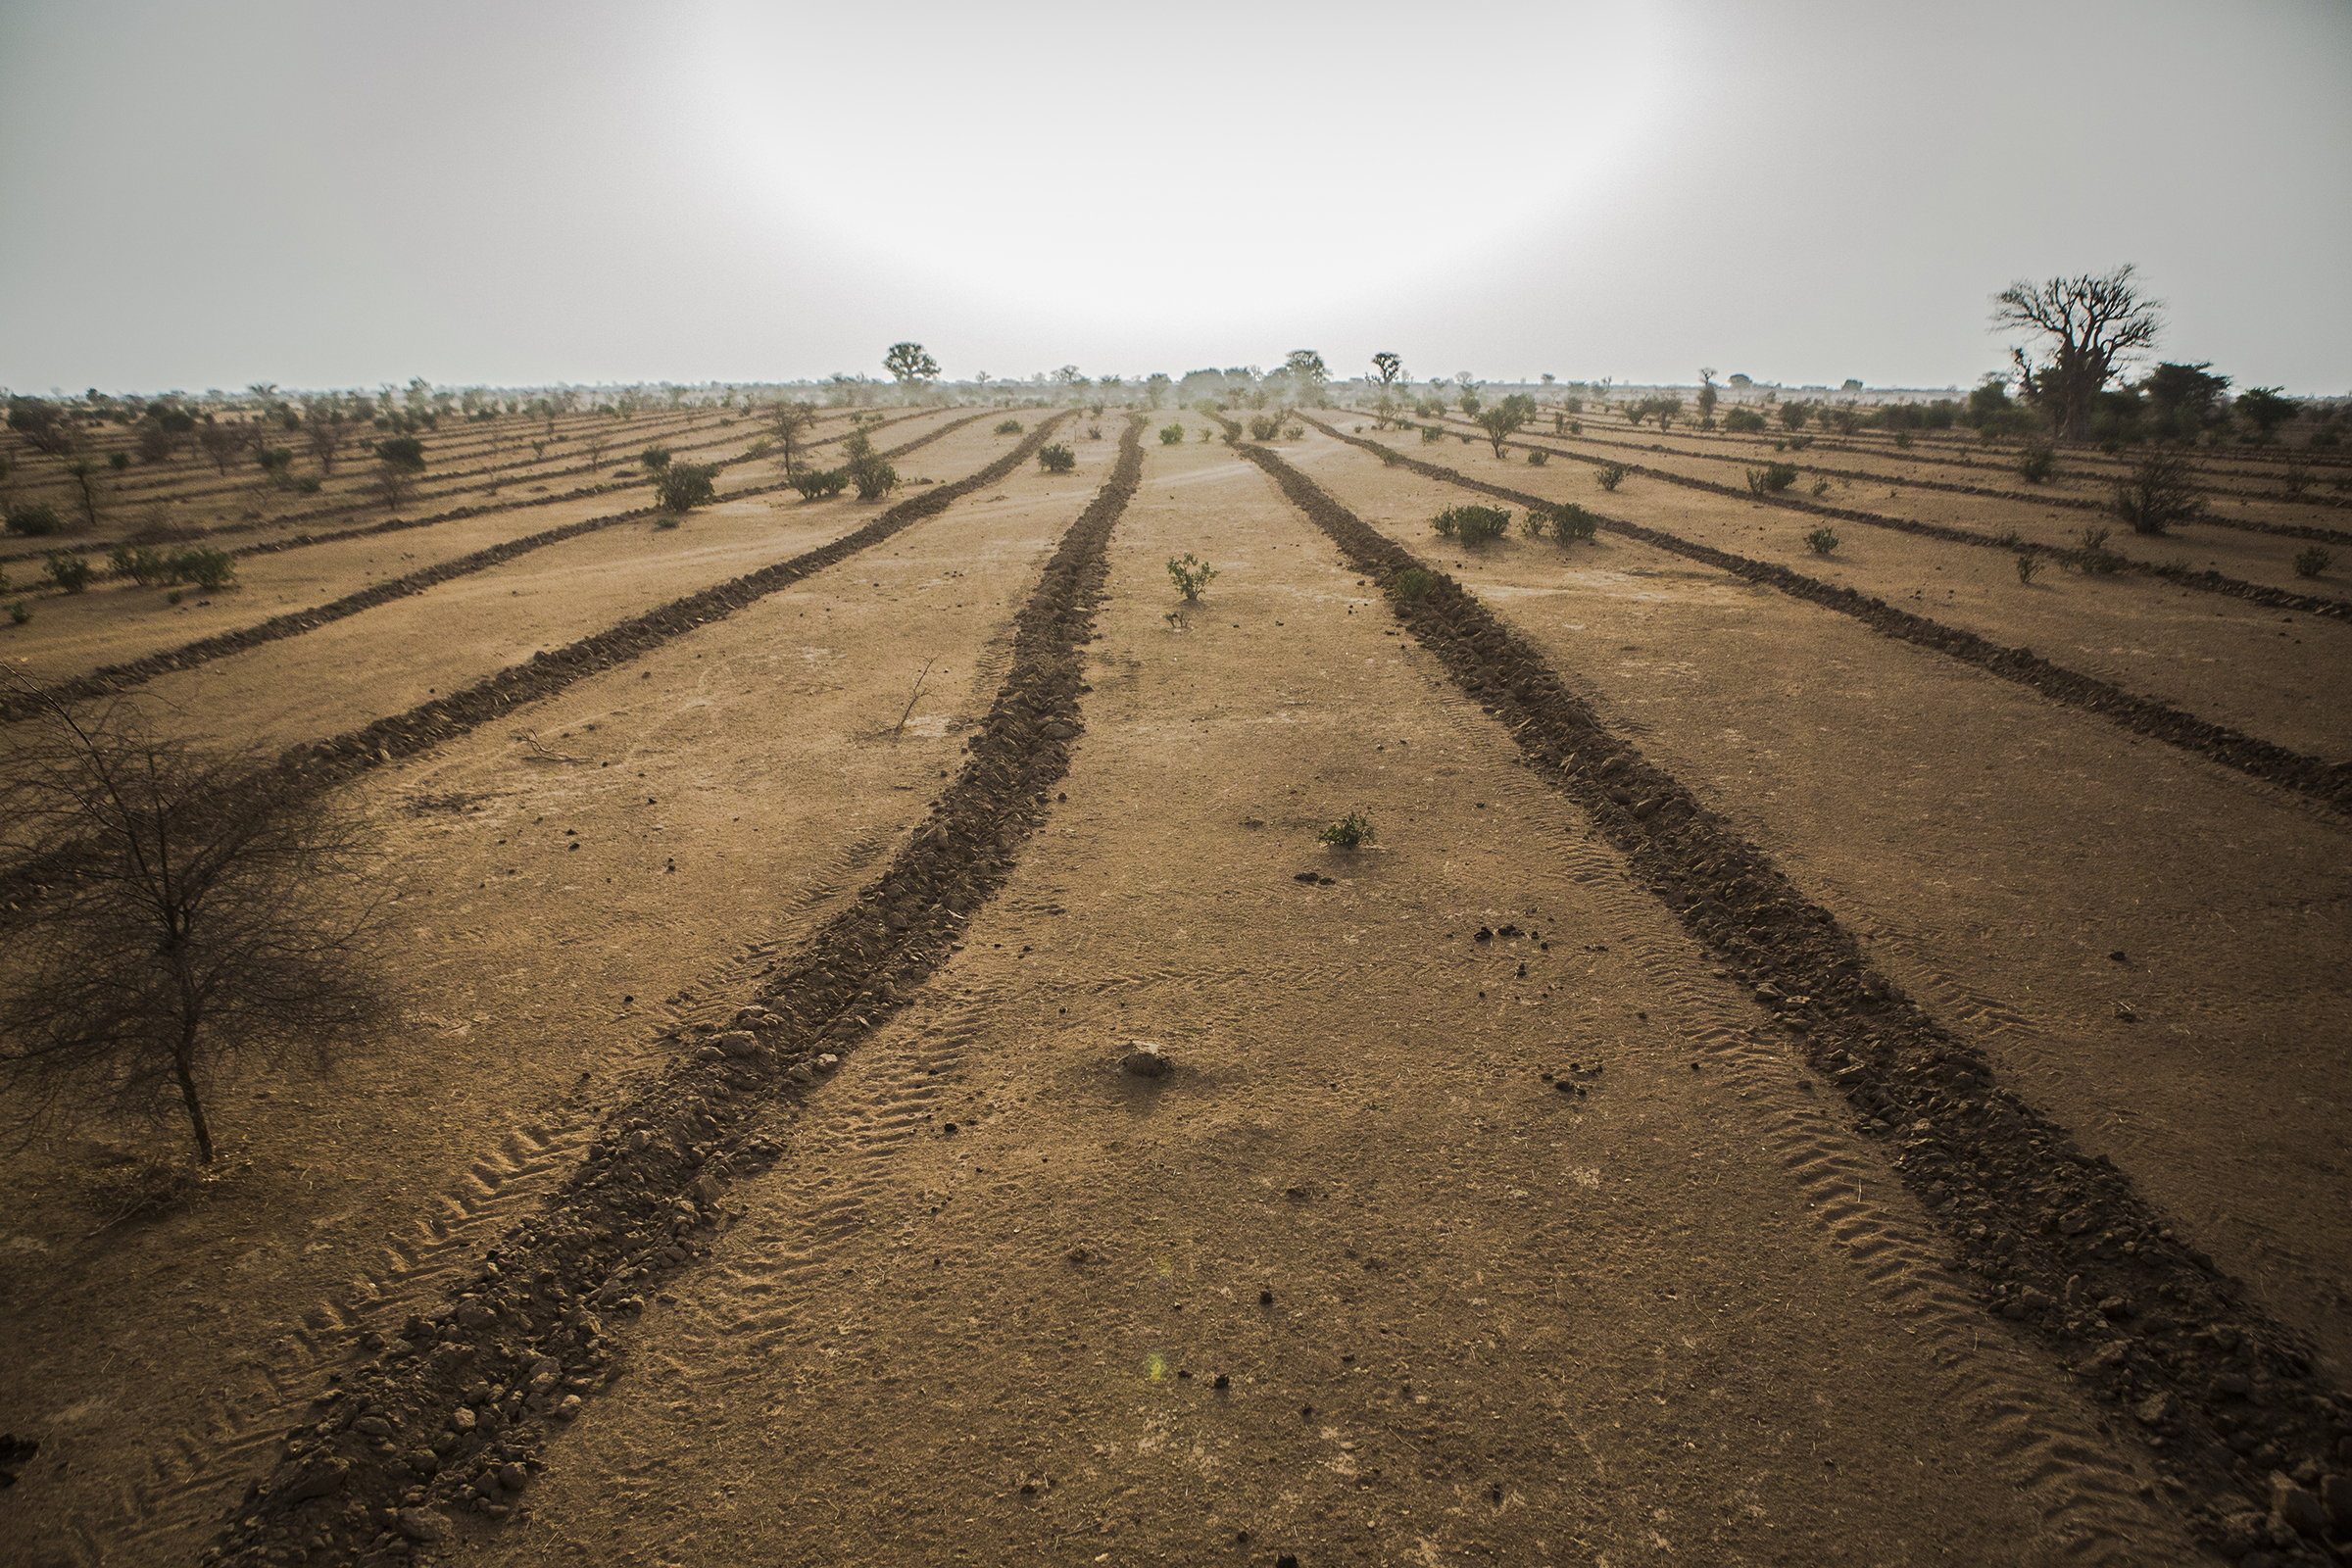 Land in Mbar Toubab, Senegal, which was plowed in anticipation of the planting of seedlings for the Great Green Wall.